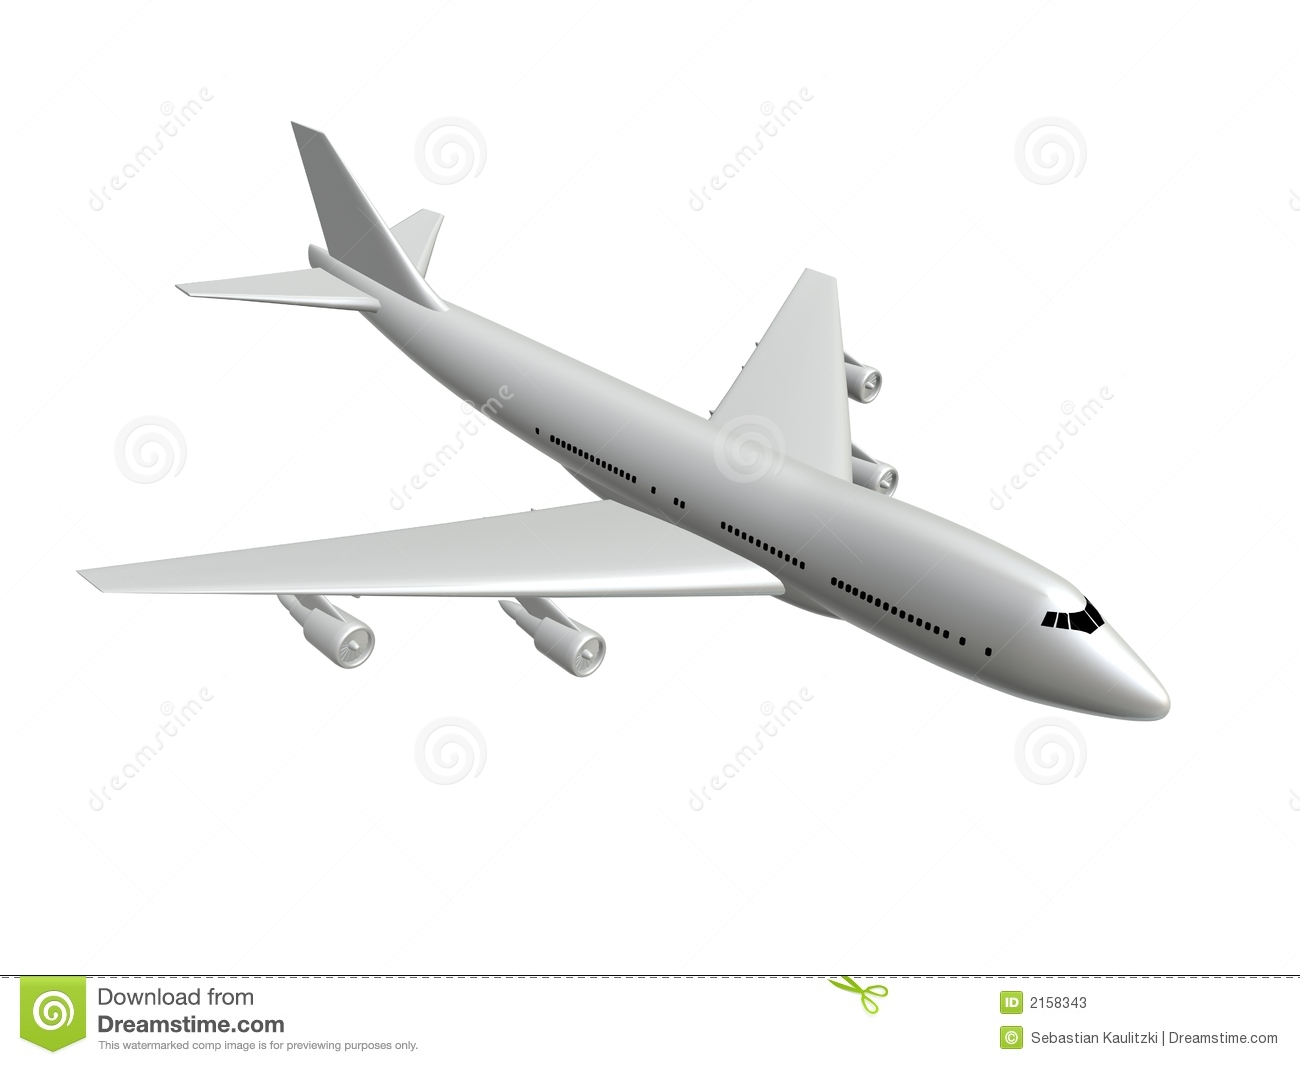 3d rendered illustration of a white plane.